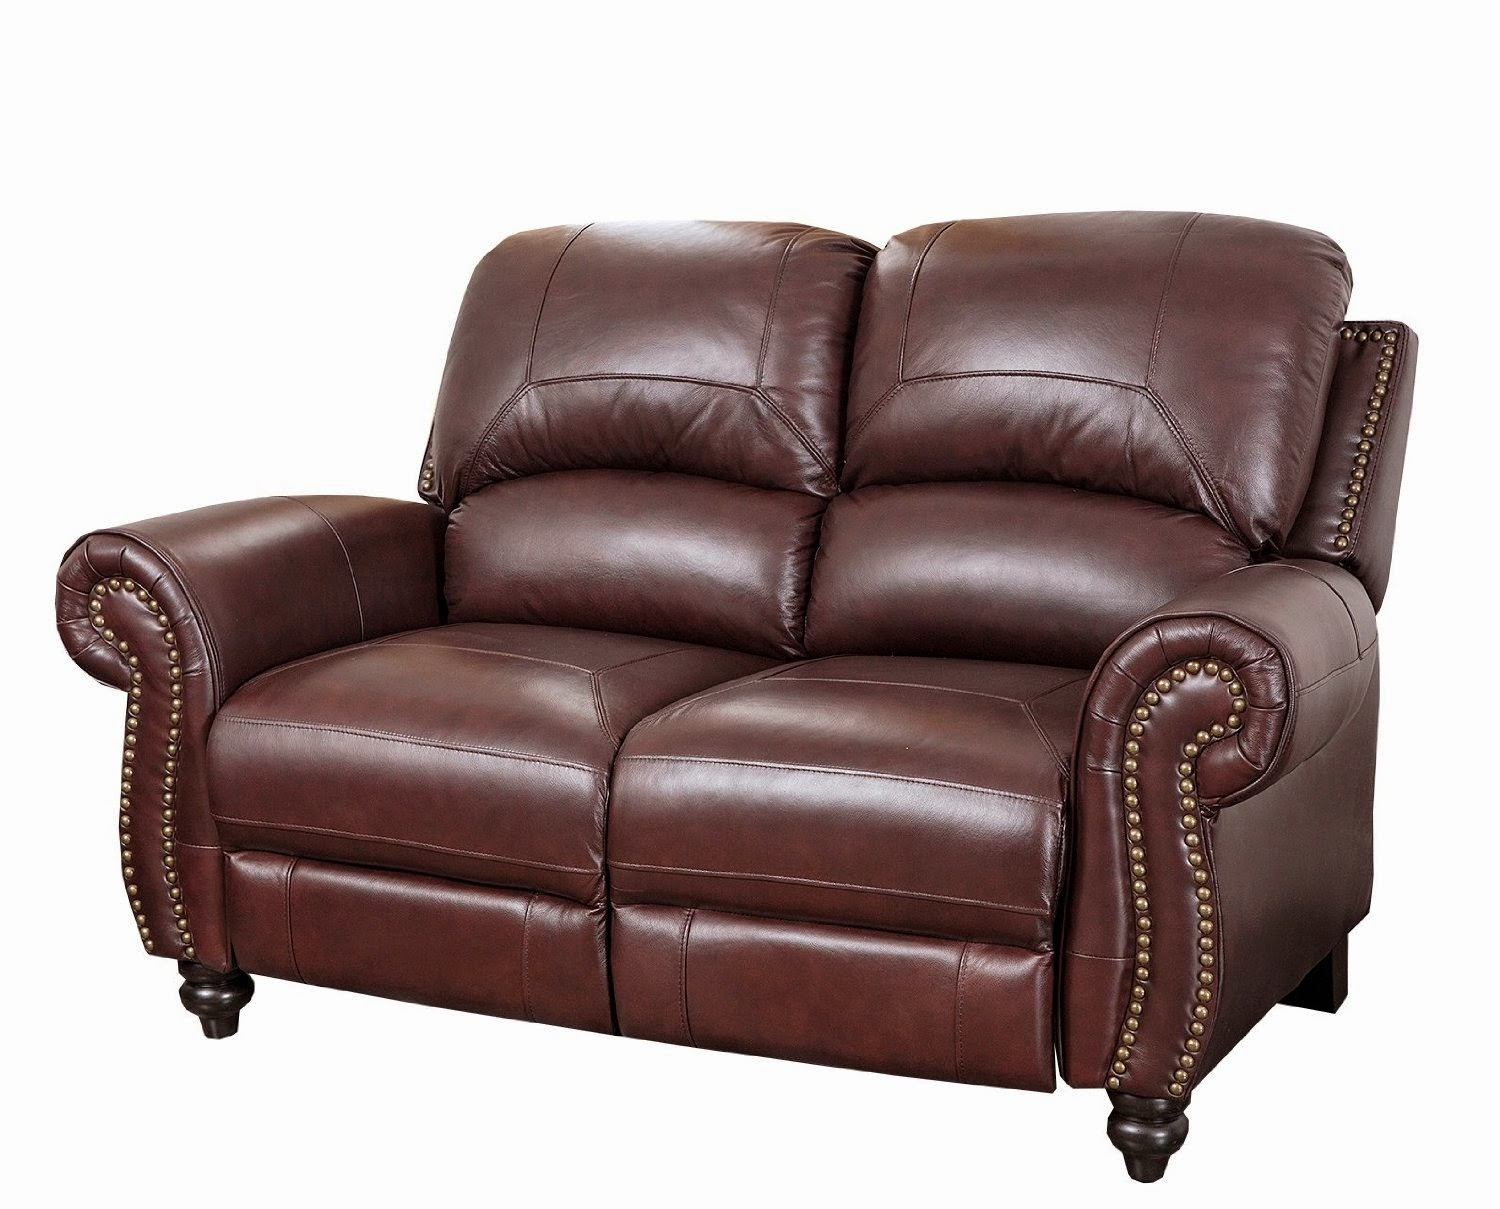 Abbyson Living Durham Vivaldi 2 Seater Reclining Leather Sofa